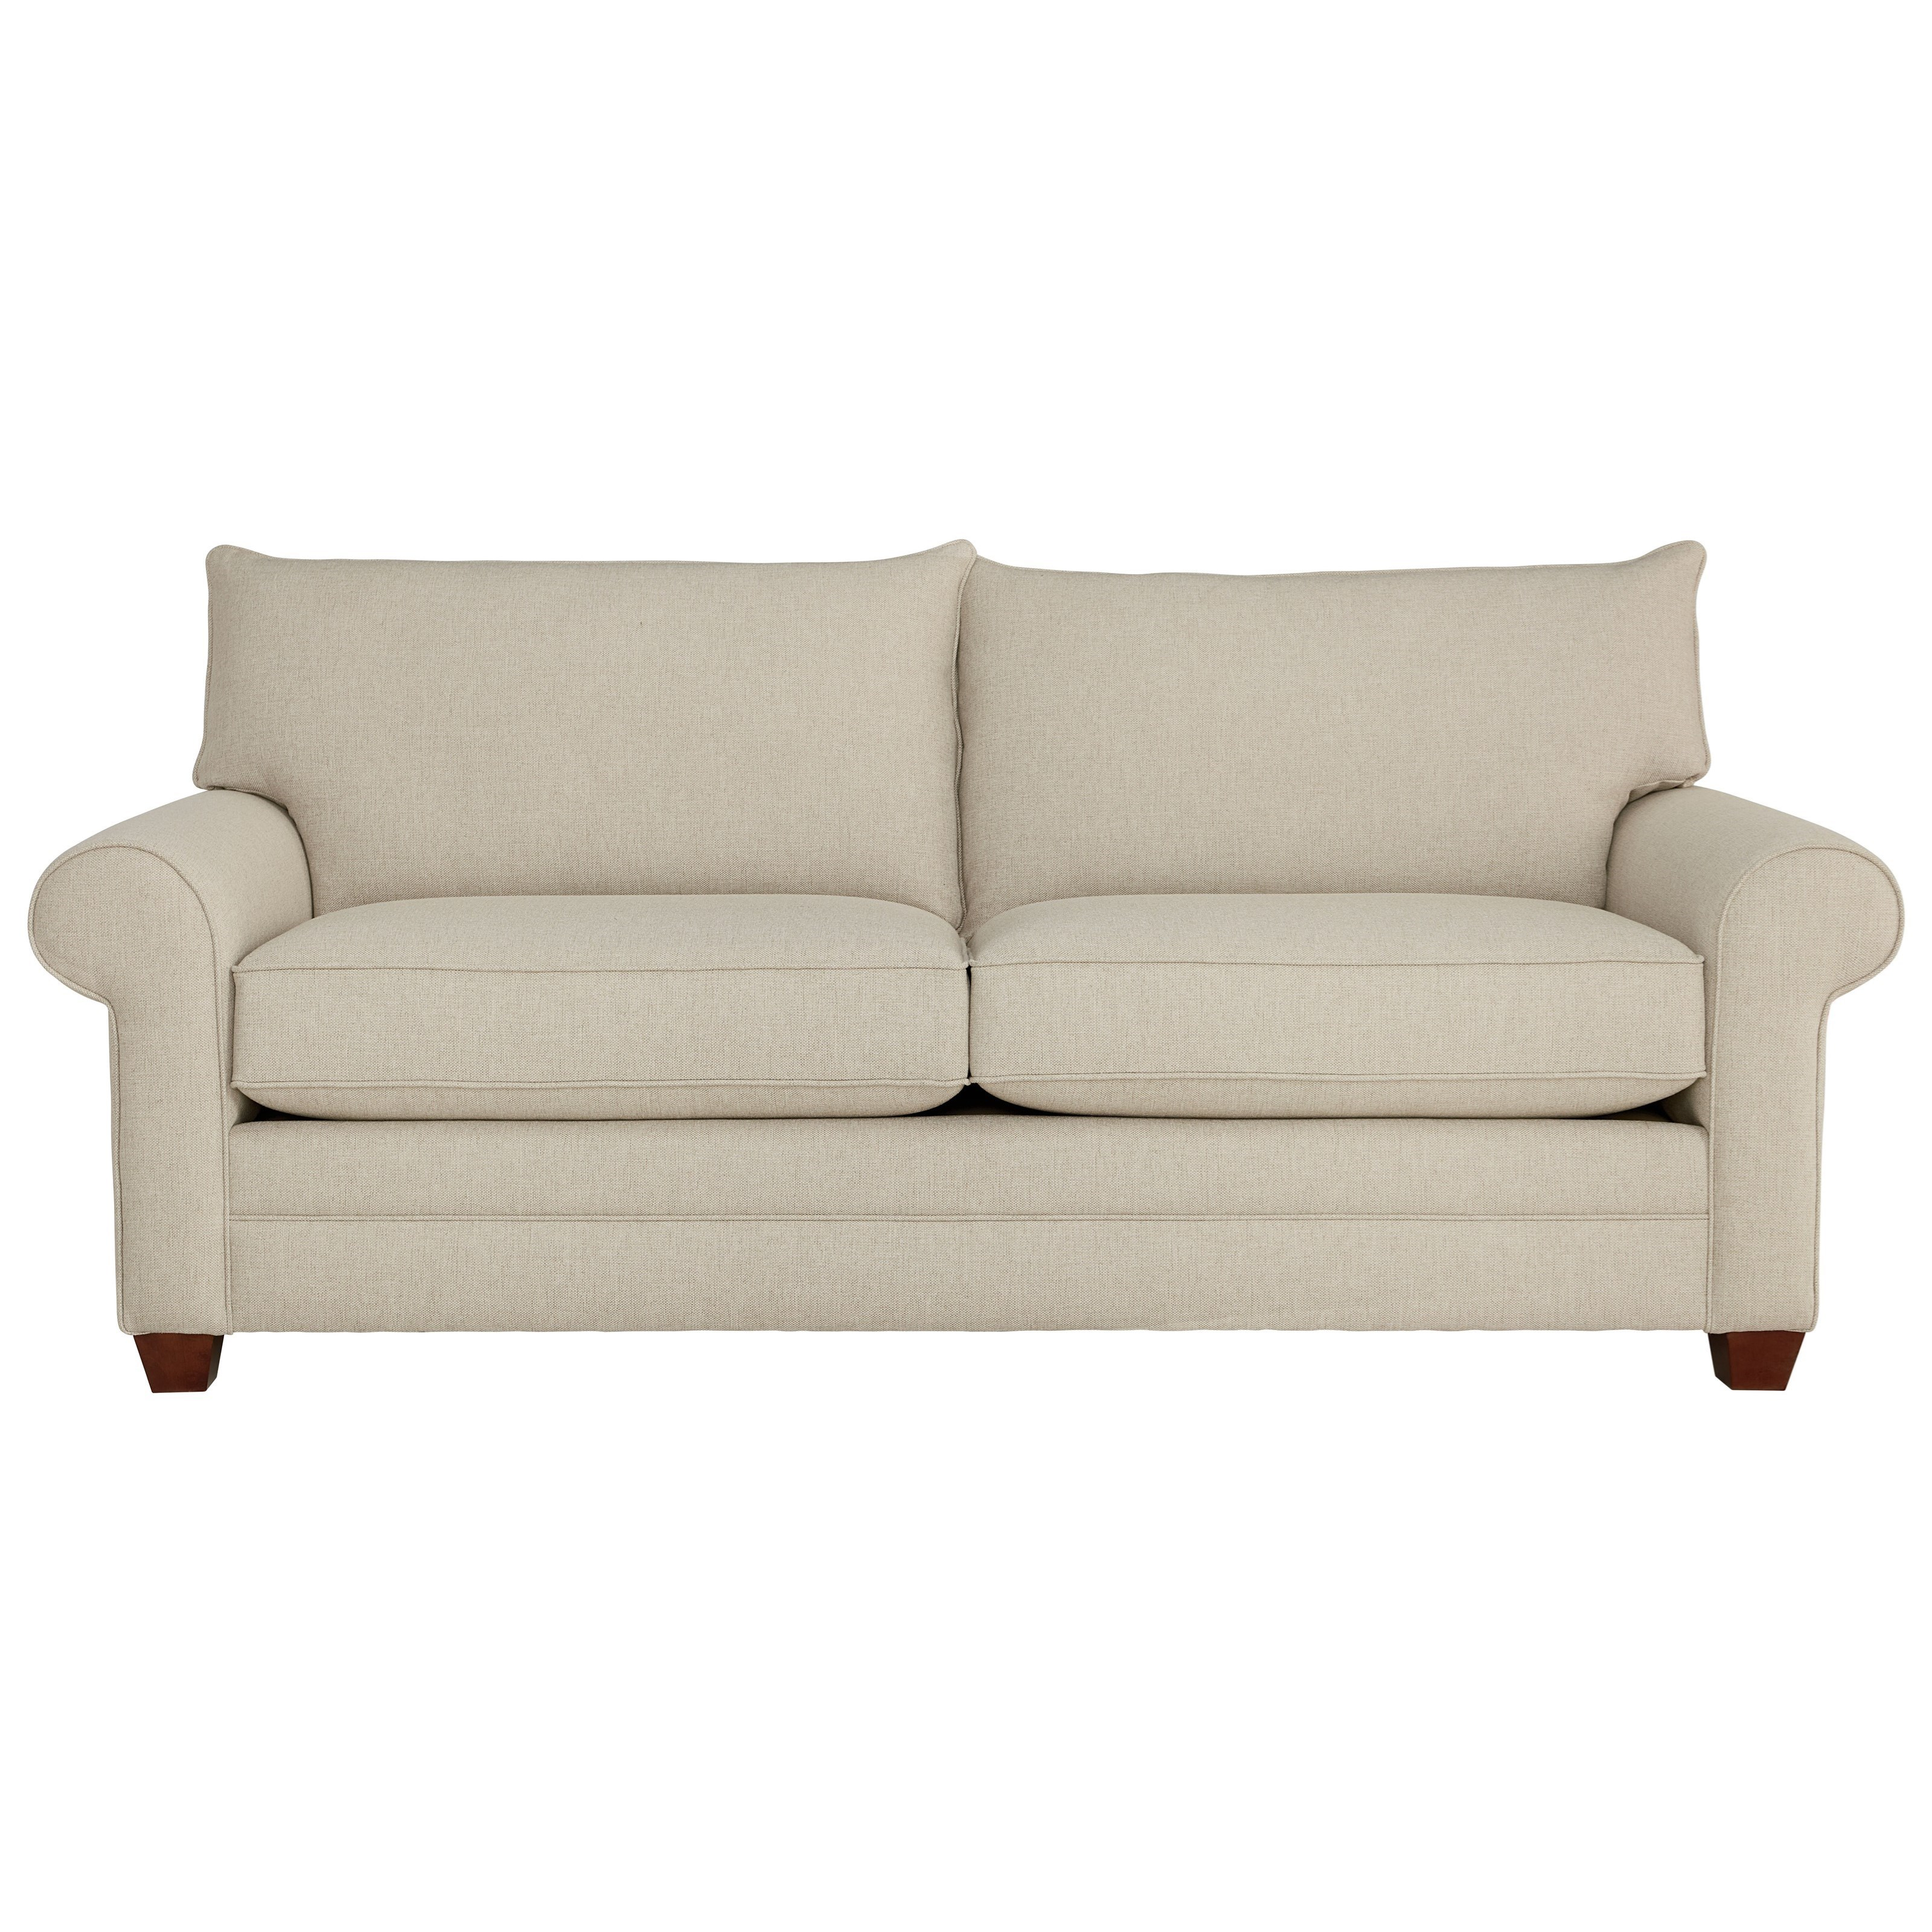 Alexander Sofa by Bassett at Fisher Home Furnishings